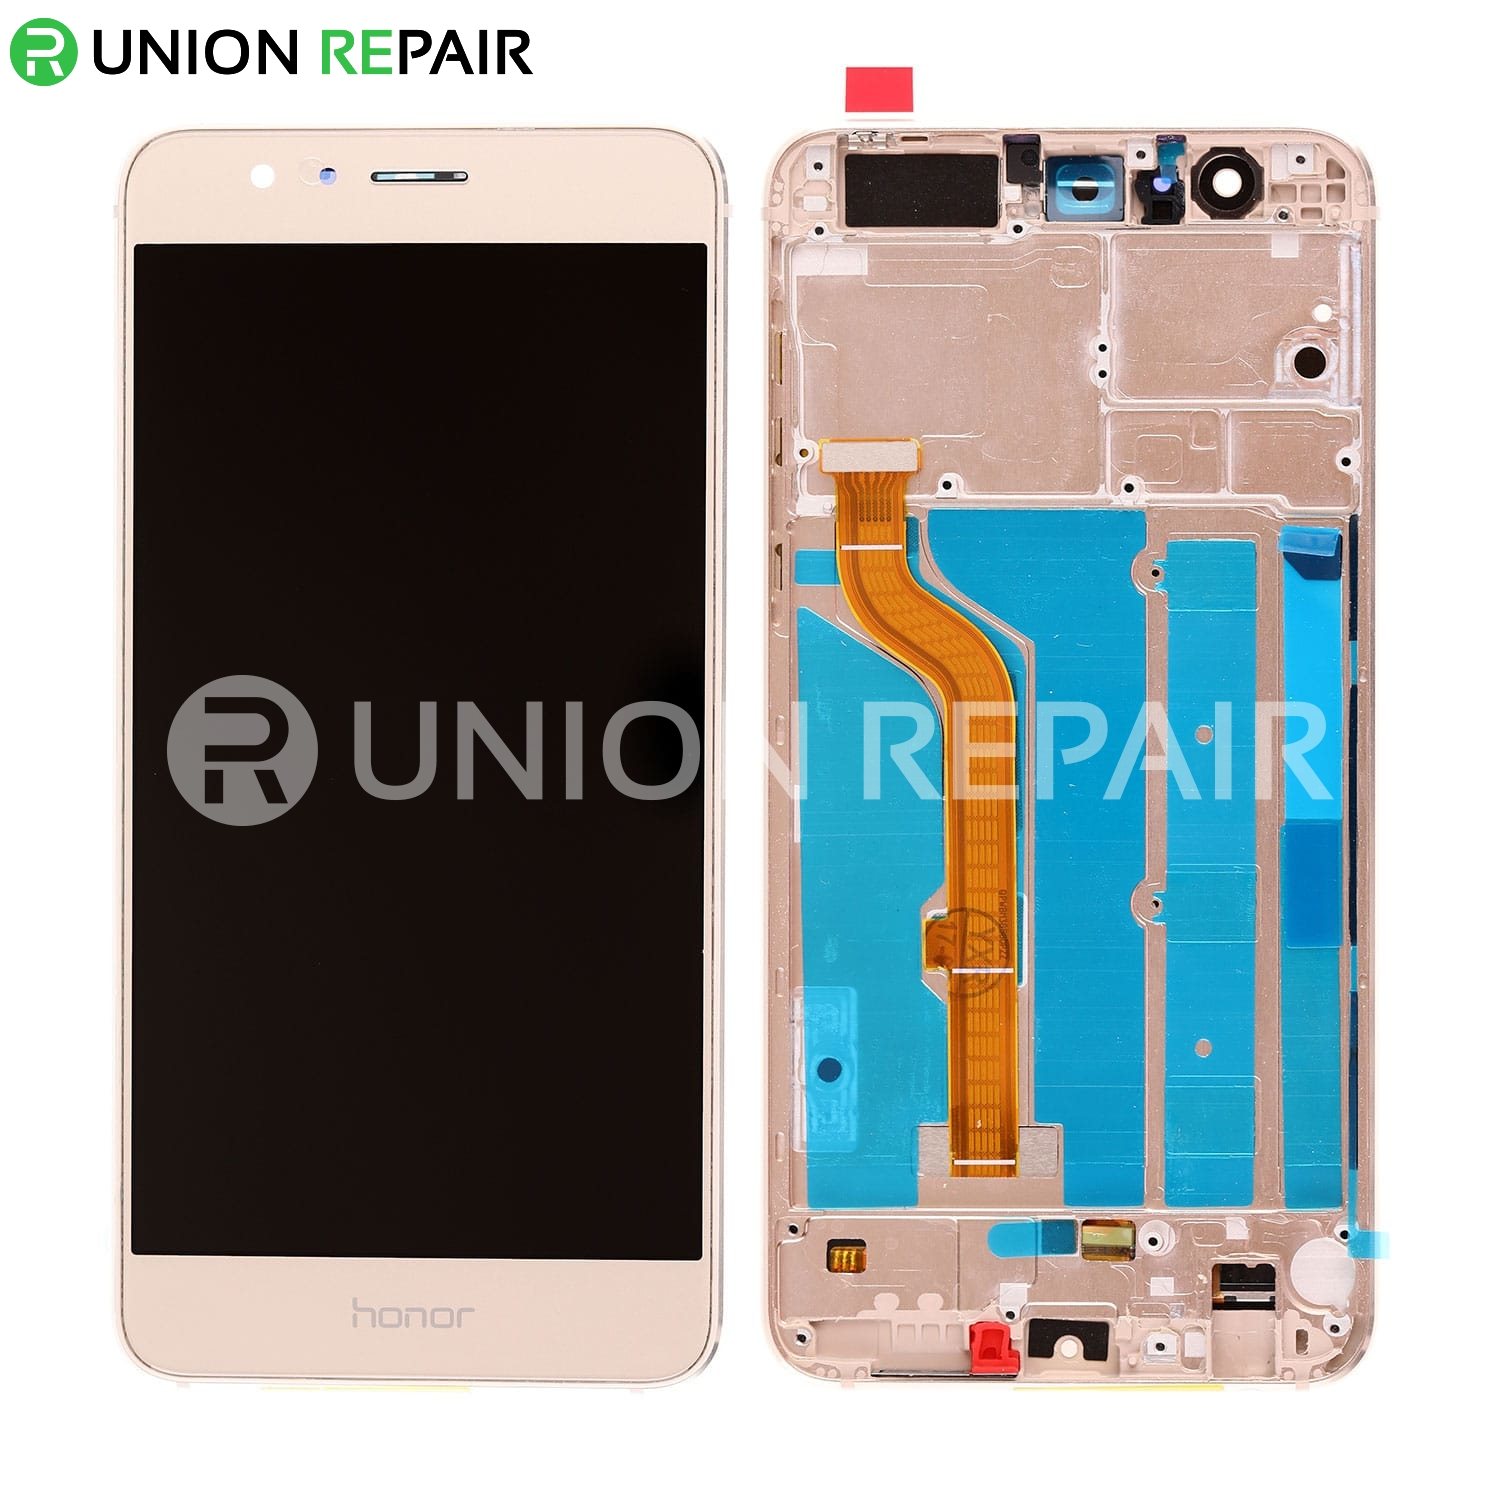 Replacement for Huawei Honor 8 LCD Screen Digitizer with Frame - Gold